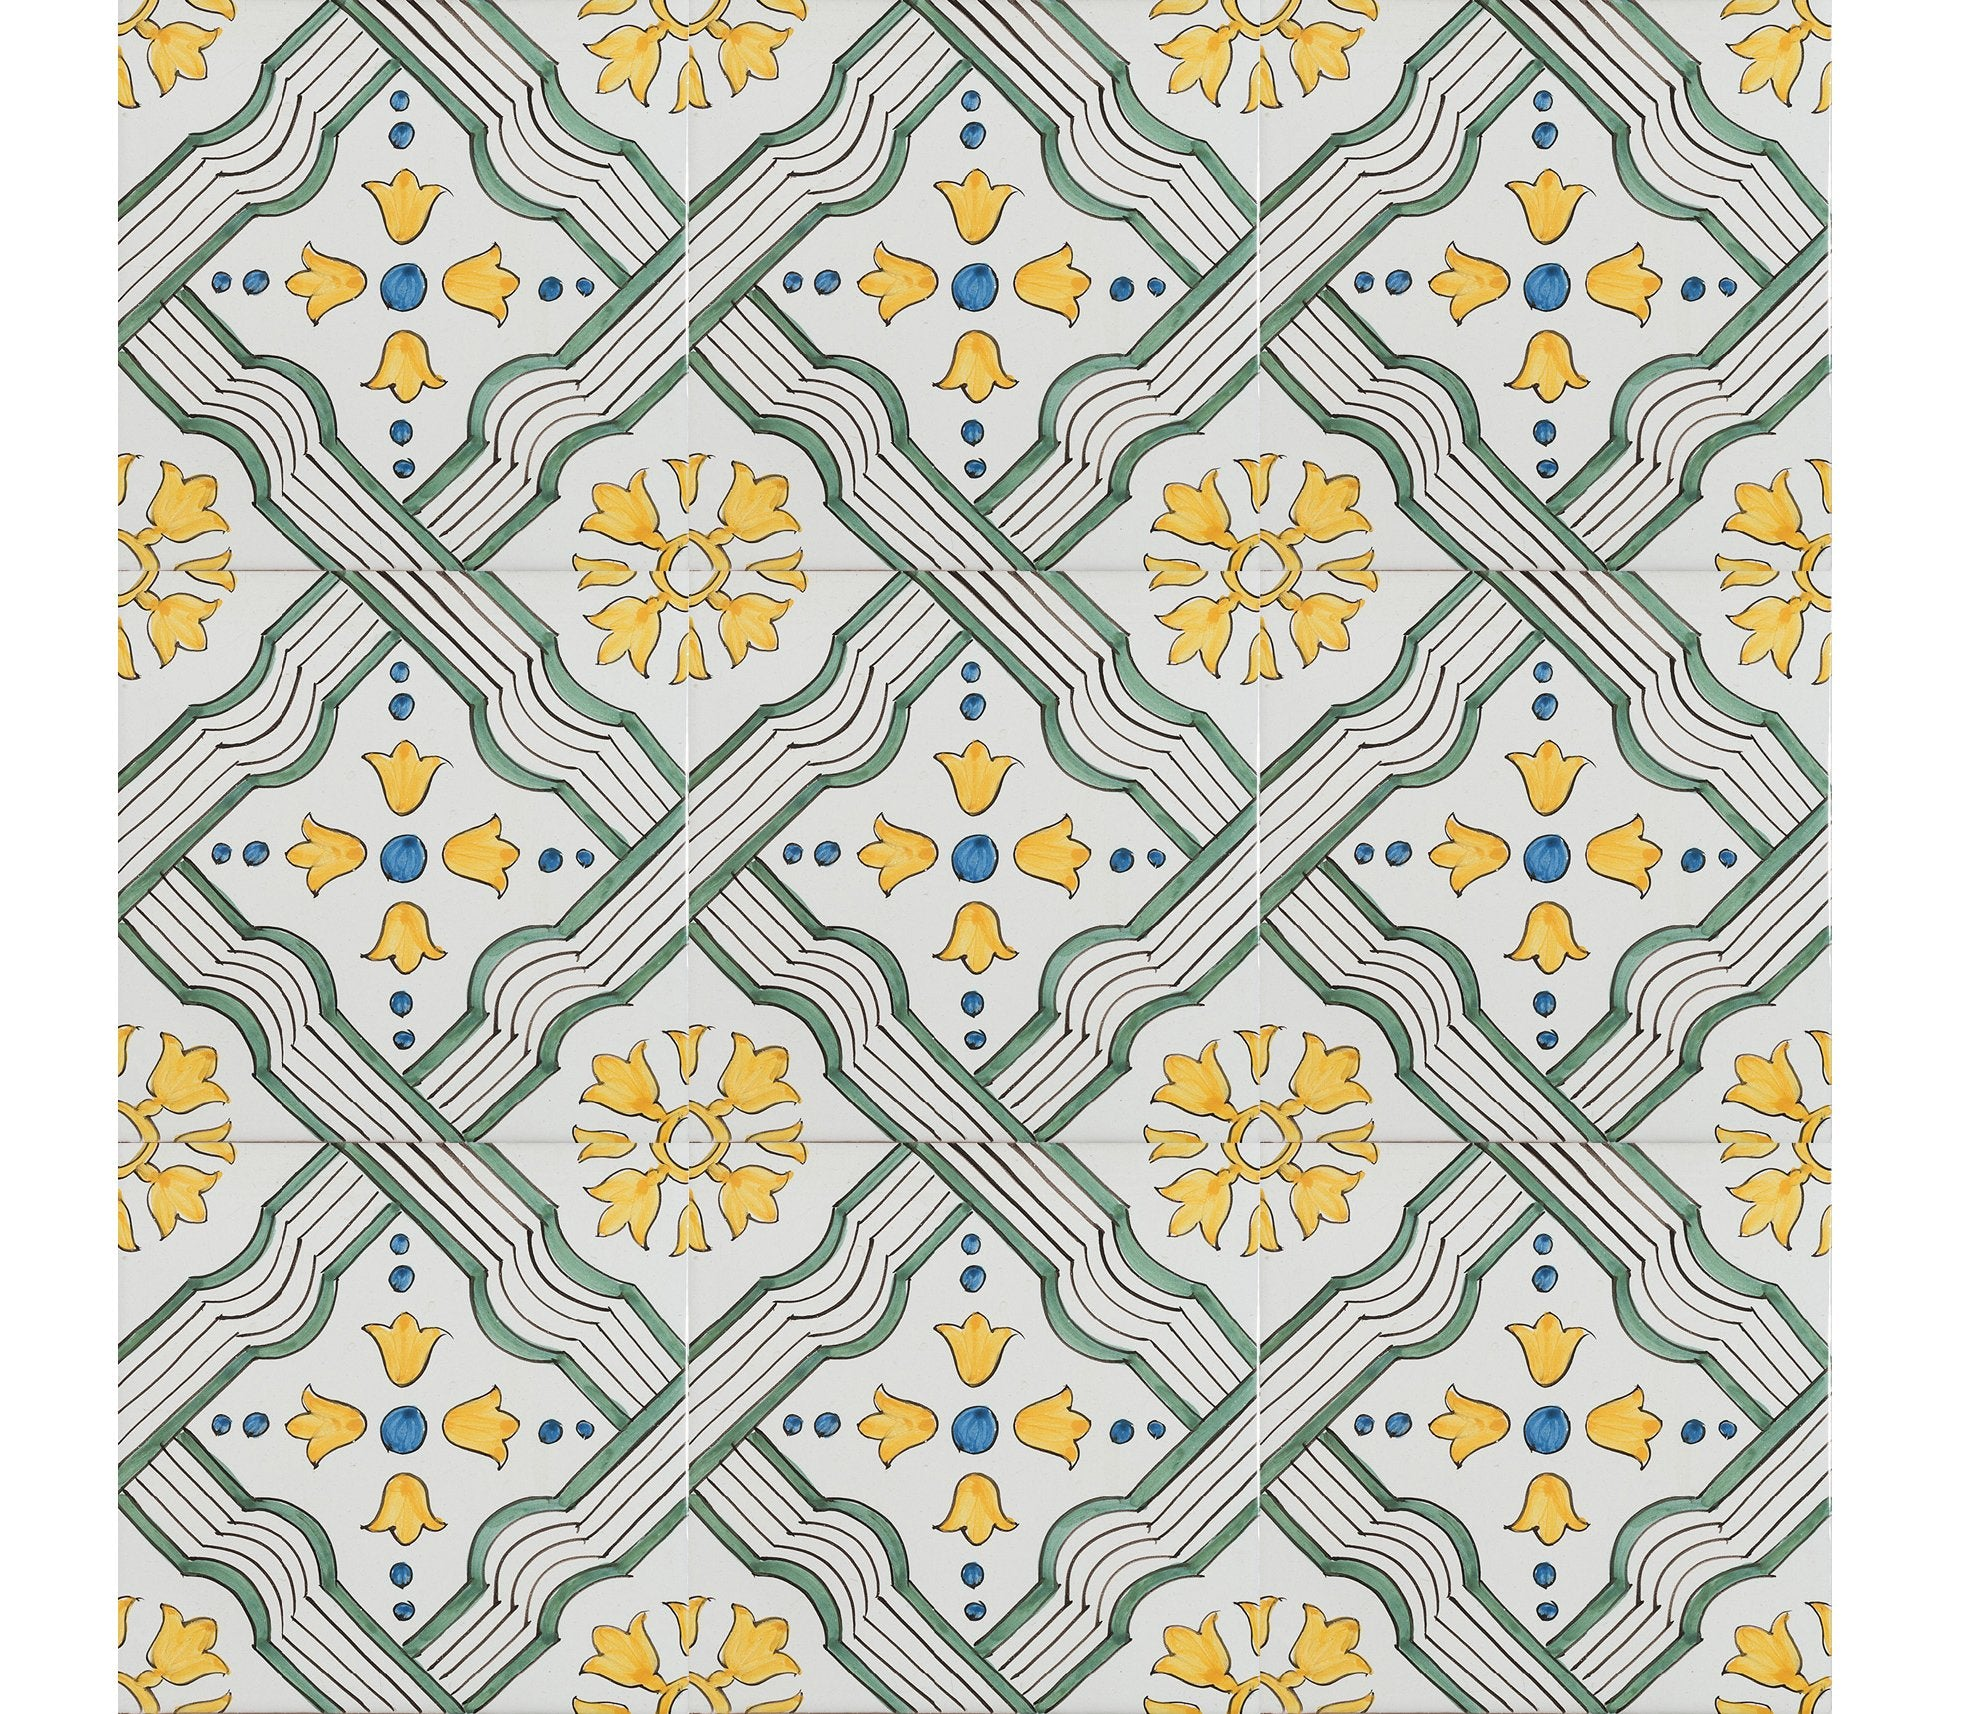 Series S Handpainted Tiles Product Image 44